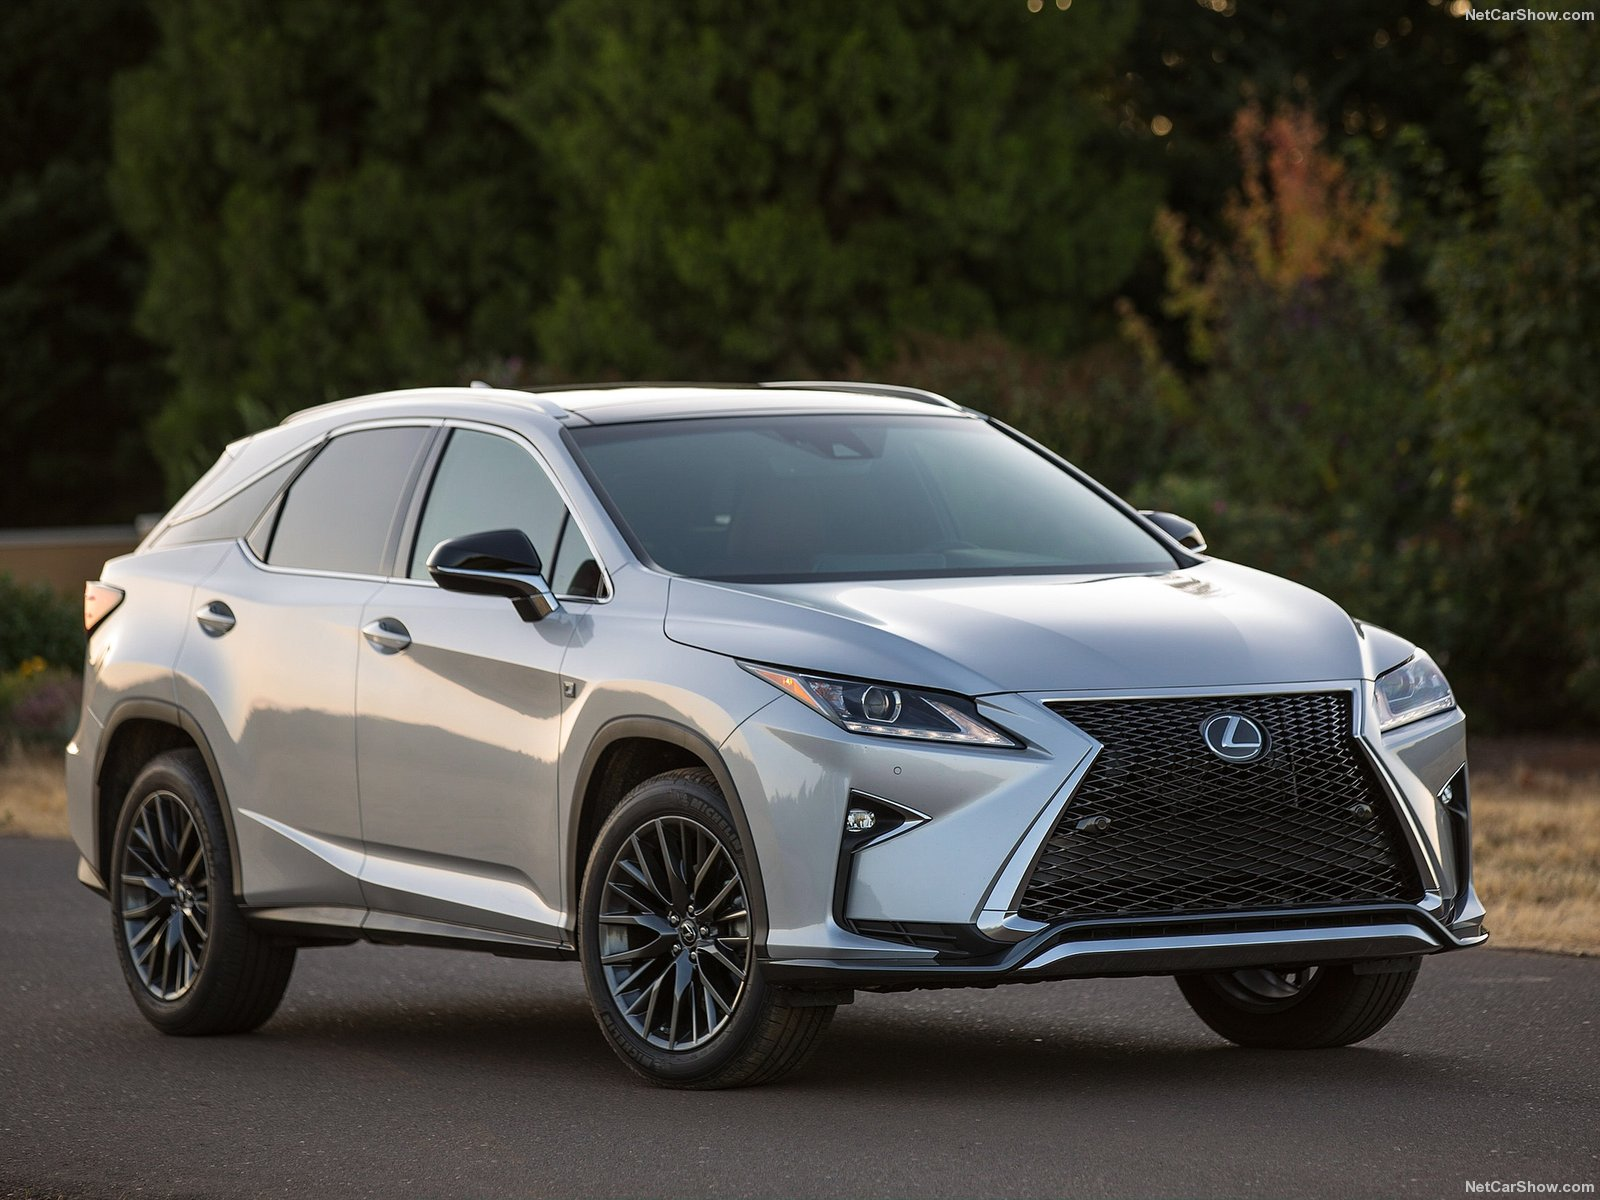 Lexus RX 350 F Sport photo 149921